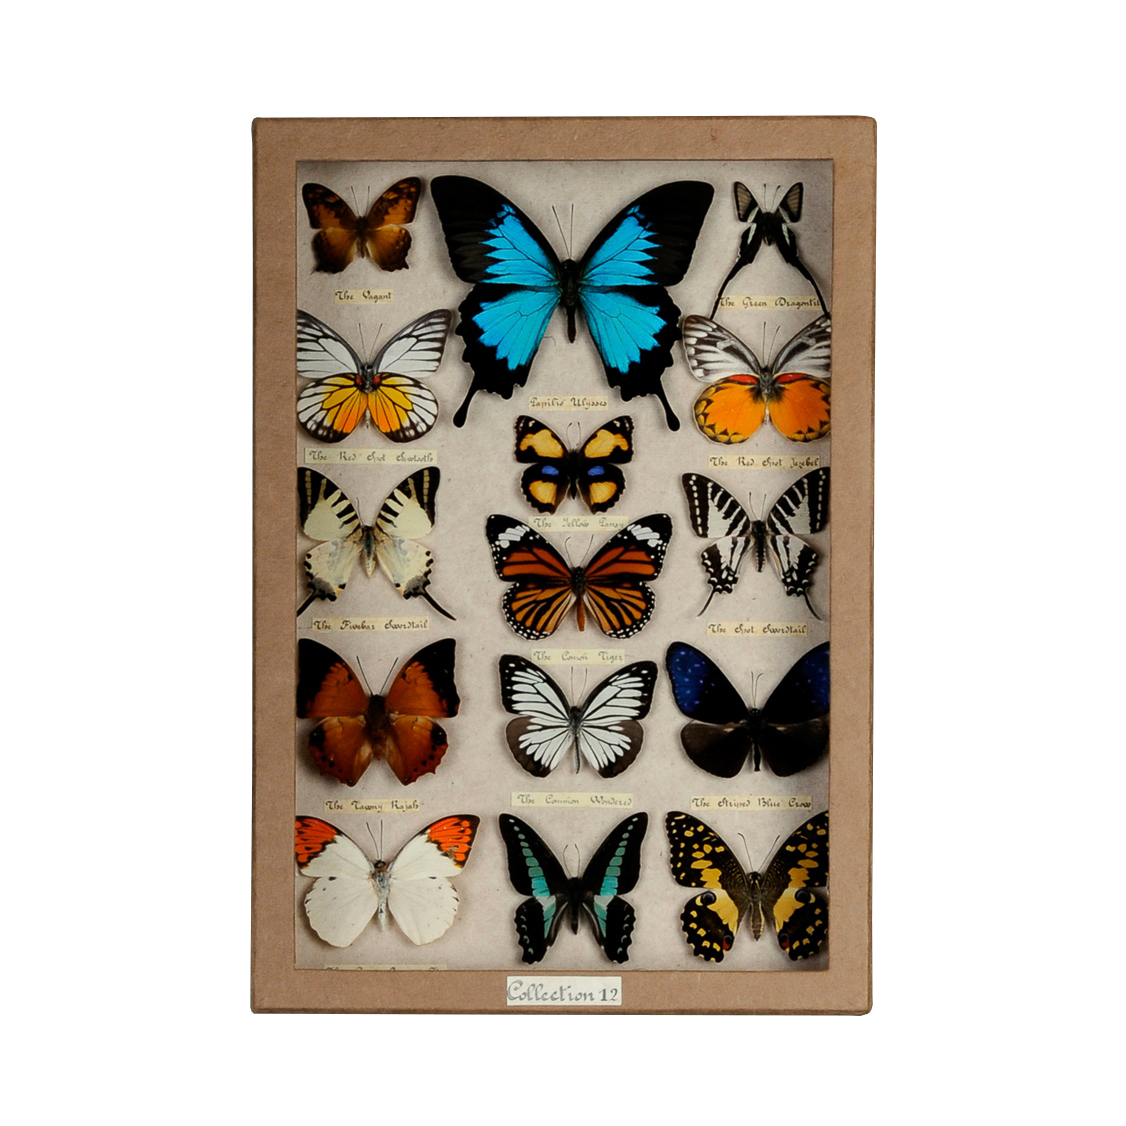 rVIdcIsriQ_Butterfly_Party_Collection_Box-Blue_Swallowtail0